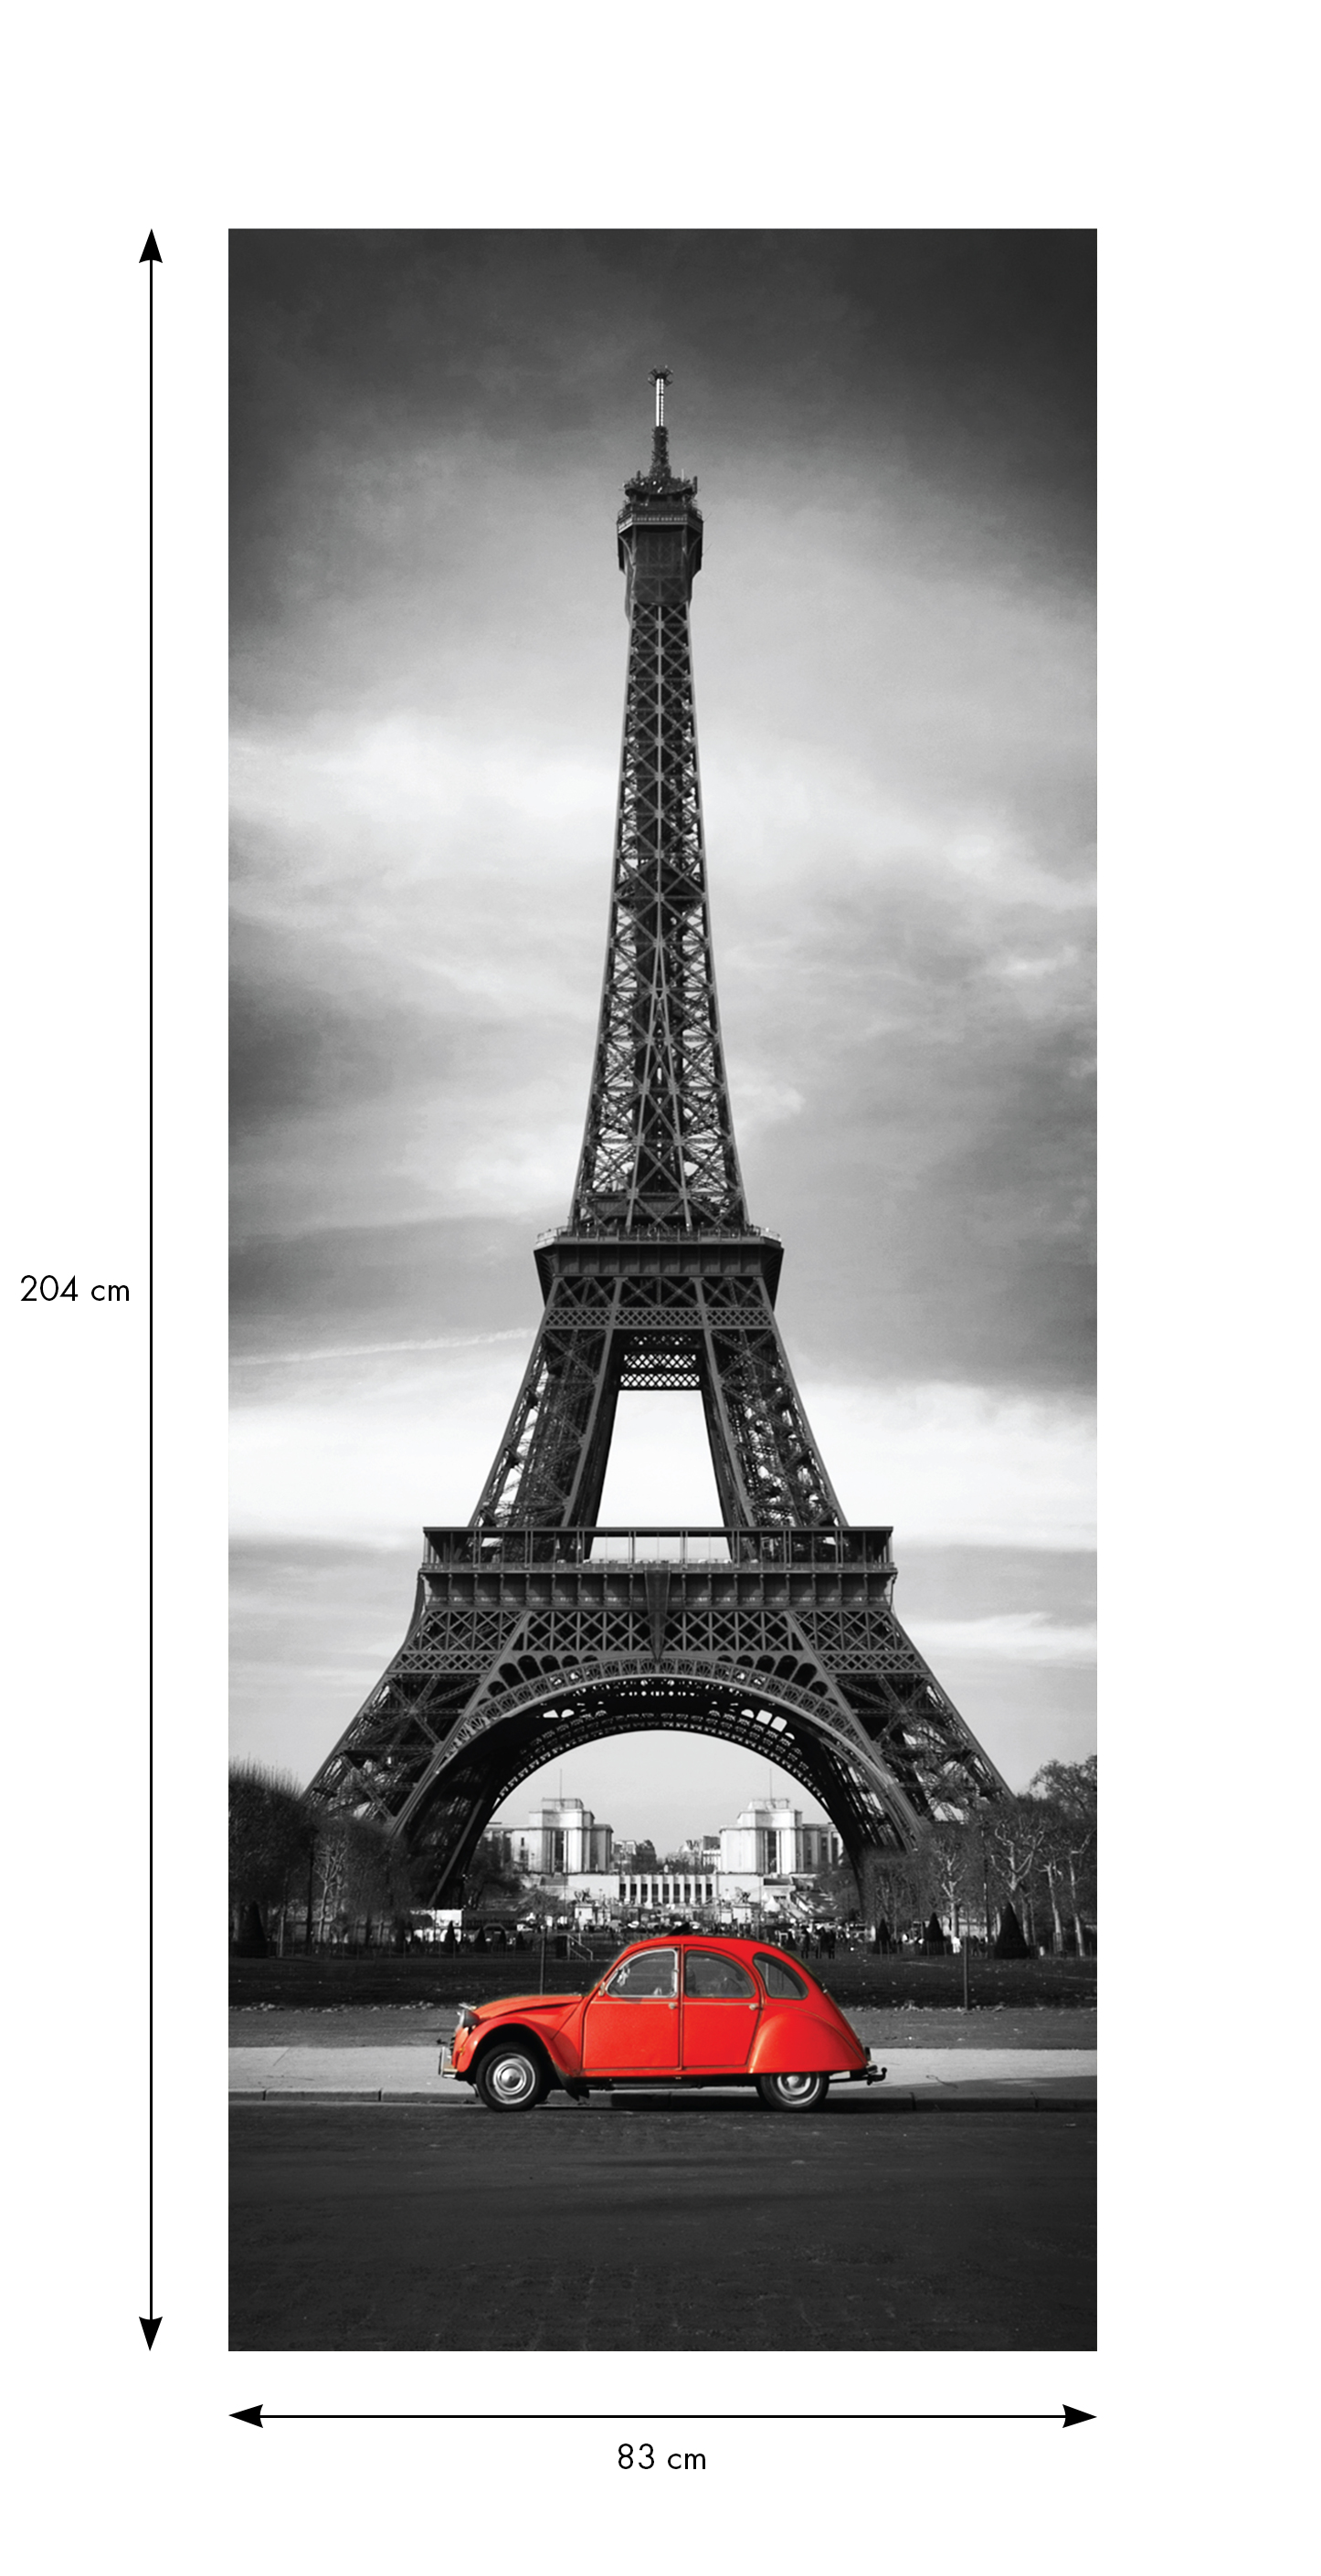 sticker porte 204 x 83 cm tour eiffel stickers villes et voyages paris ambiance sticker. Black Bedroom Furniture Sets. Home Design Ideas